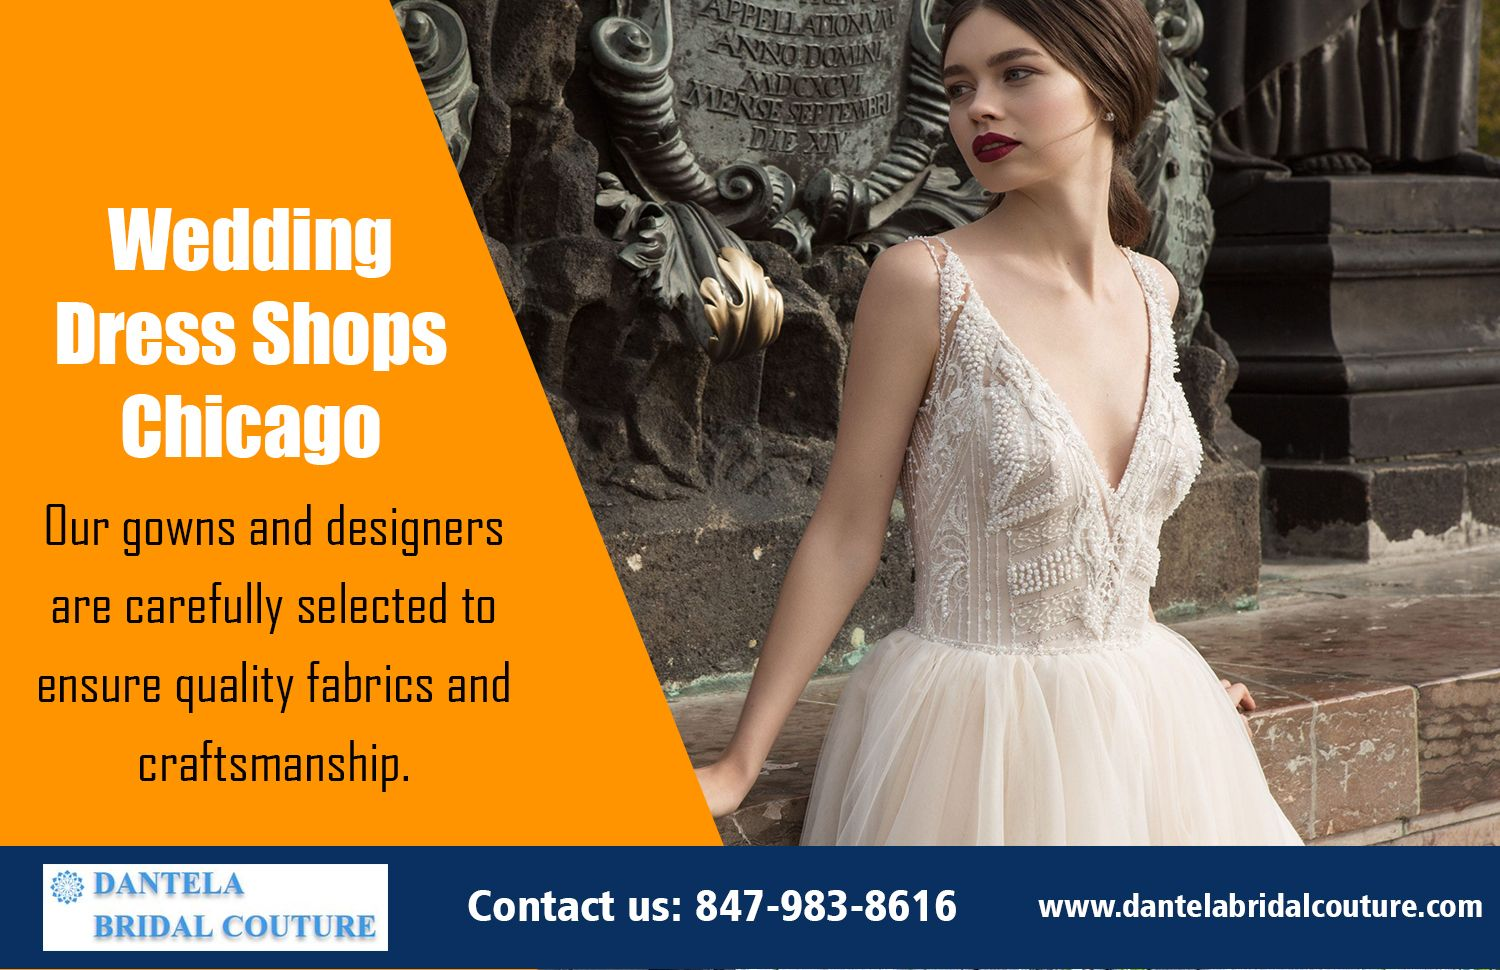 Chicago wedding dress shops  Pin by Wedding Gowns on dantelabridalcouture  Pinterest